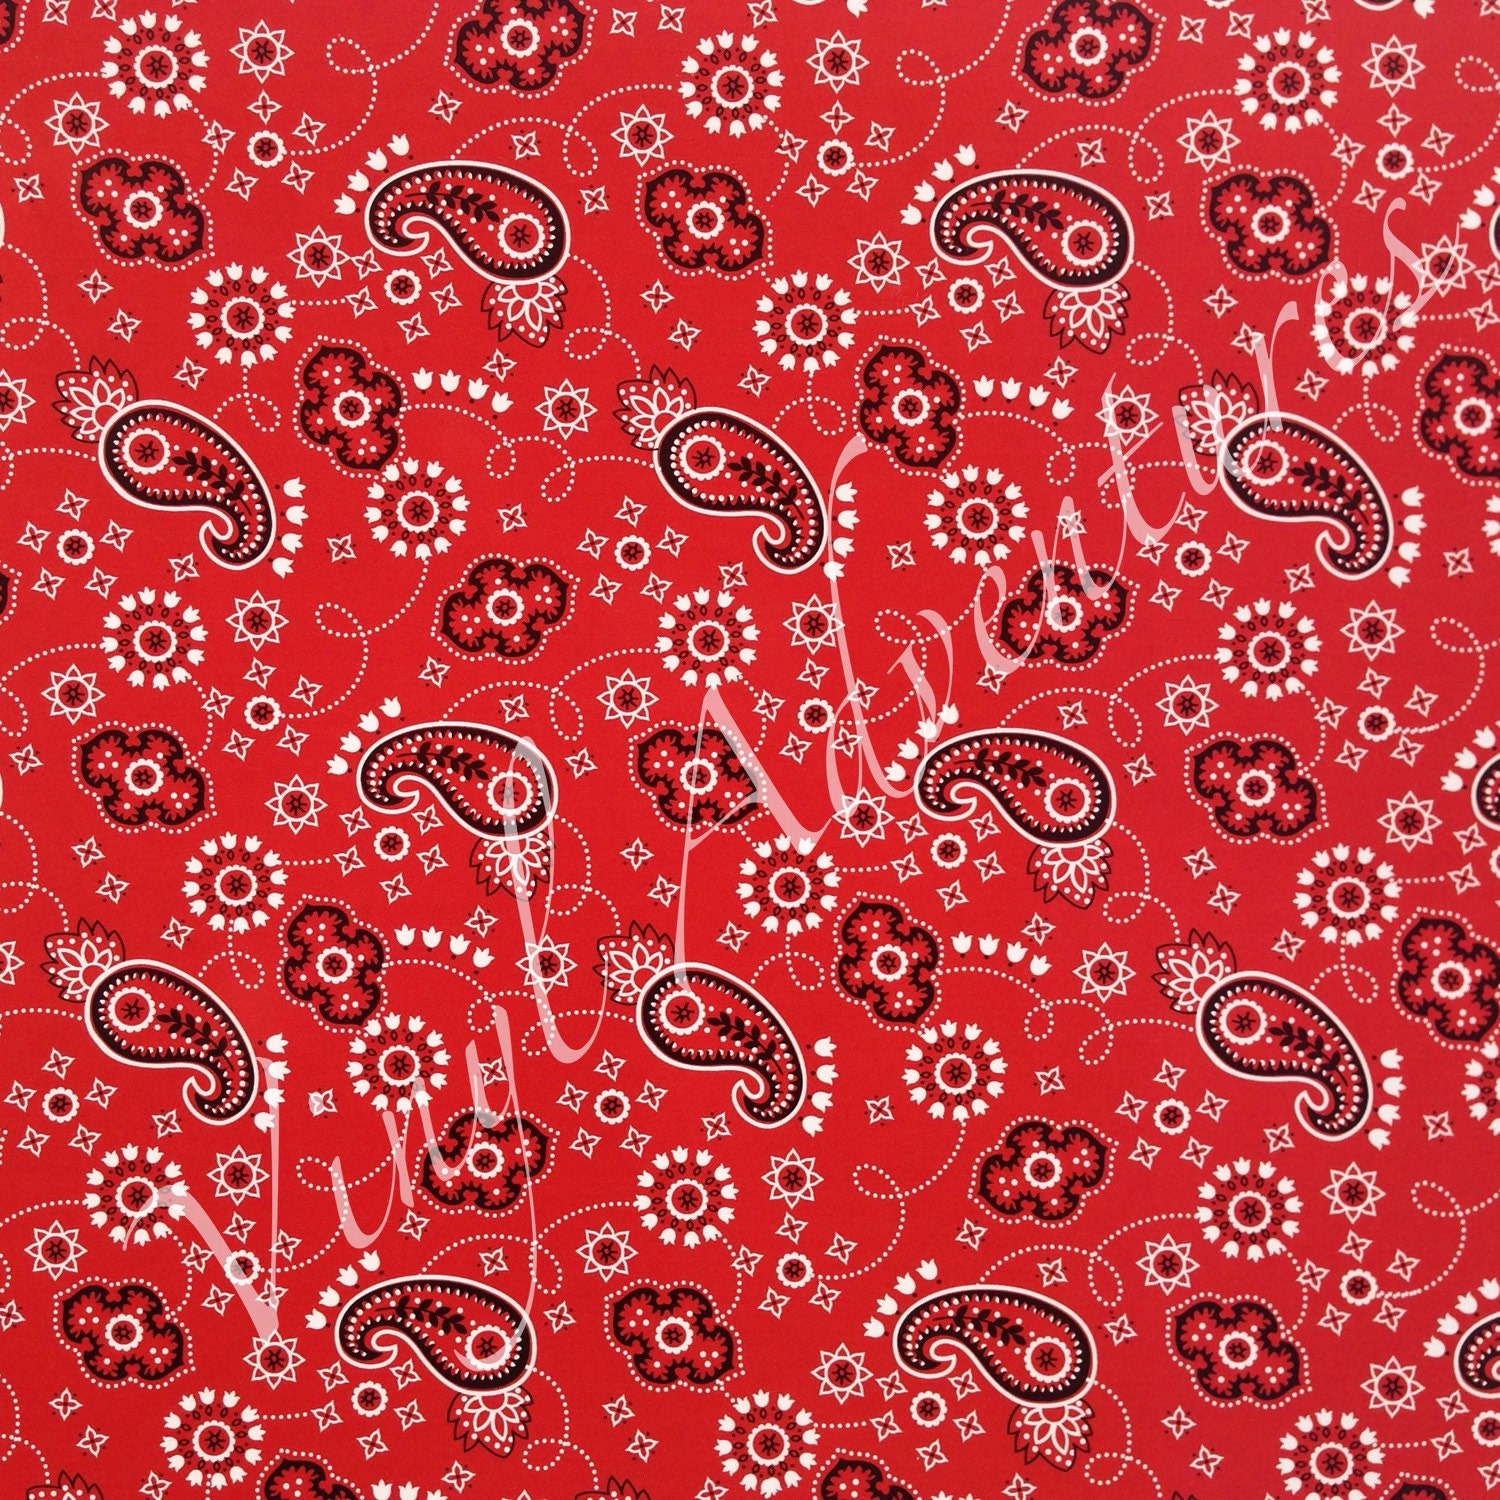 Bandana Pattern Vinyl Red Bandana Patterned Vinyl